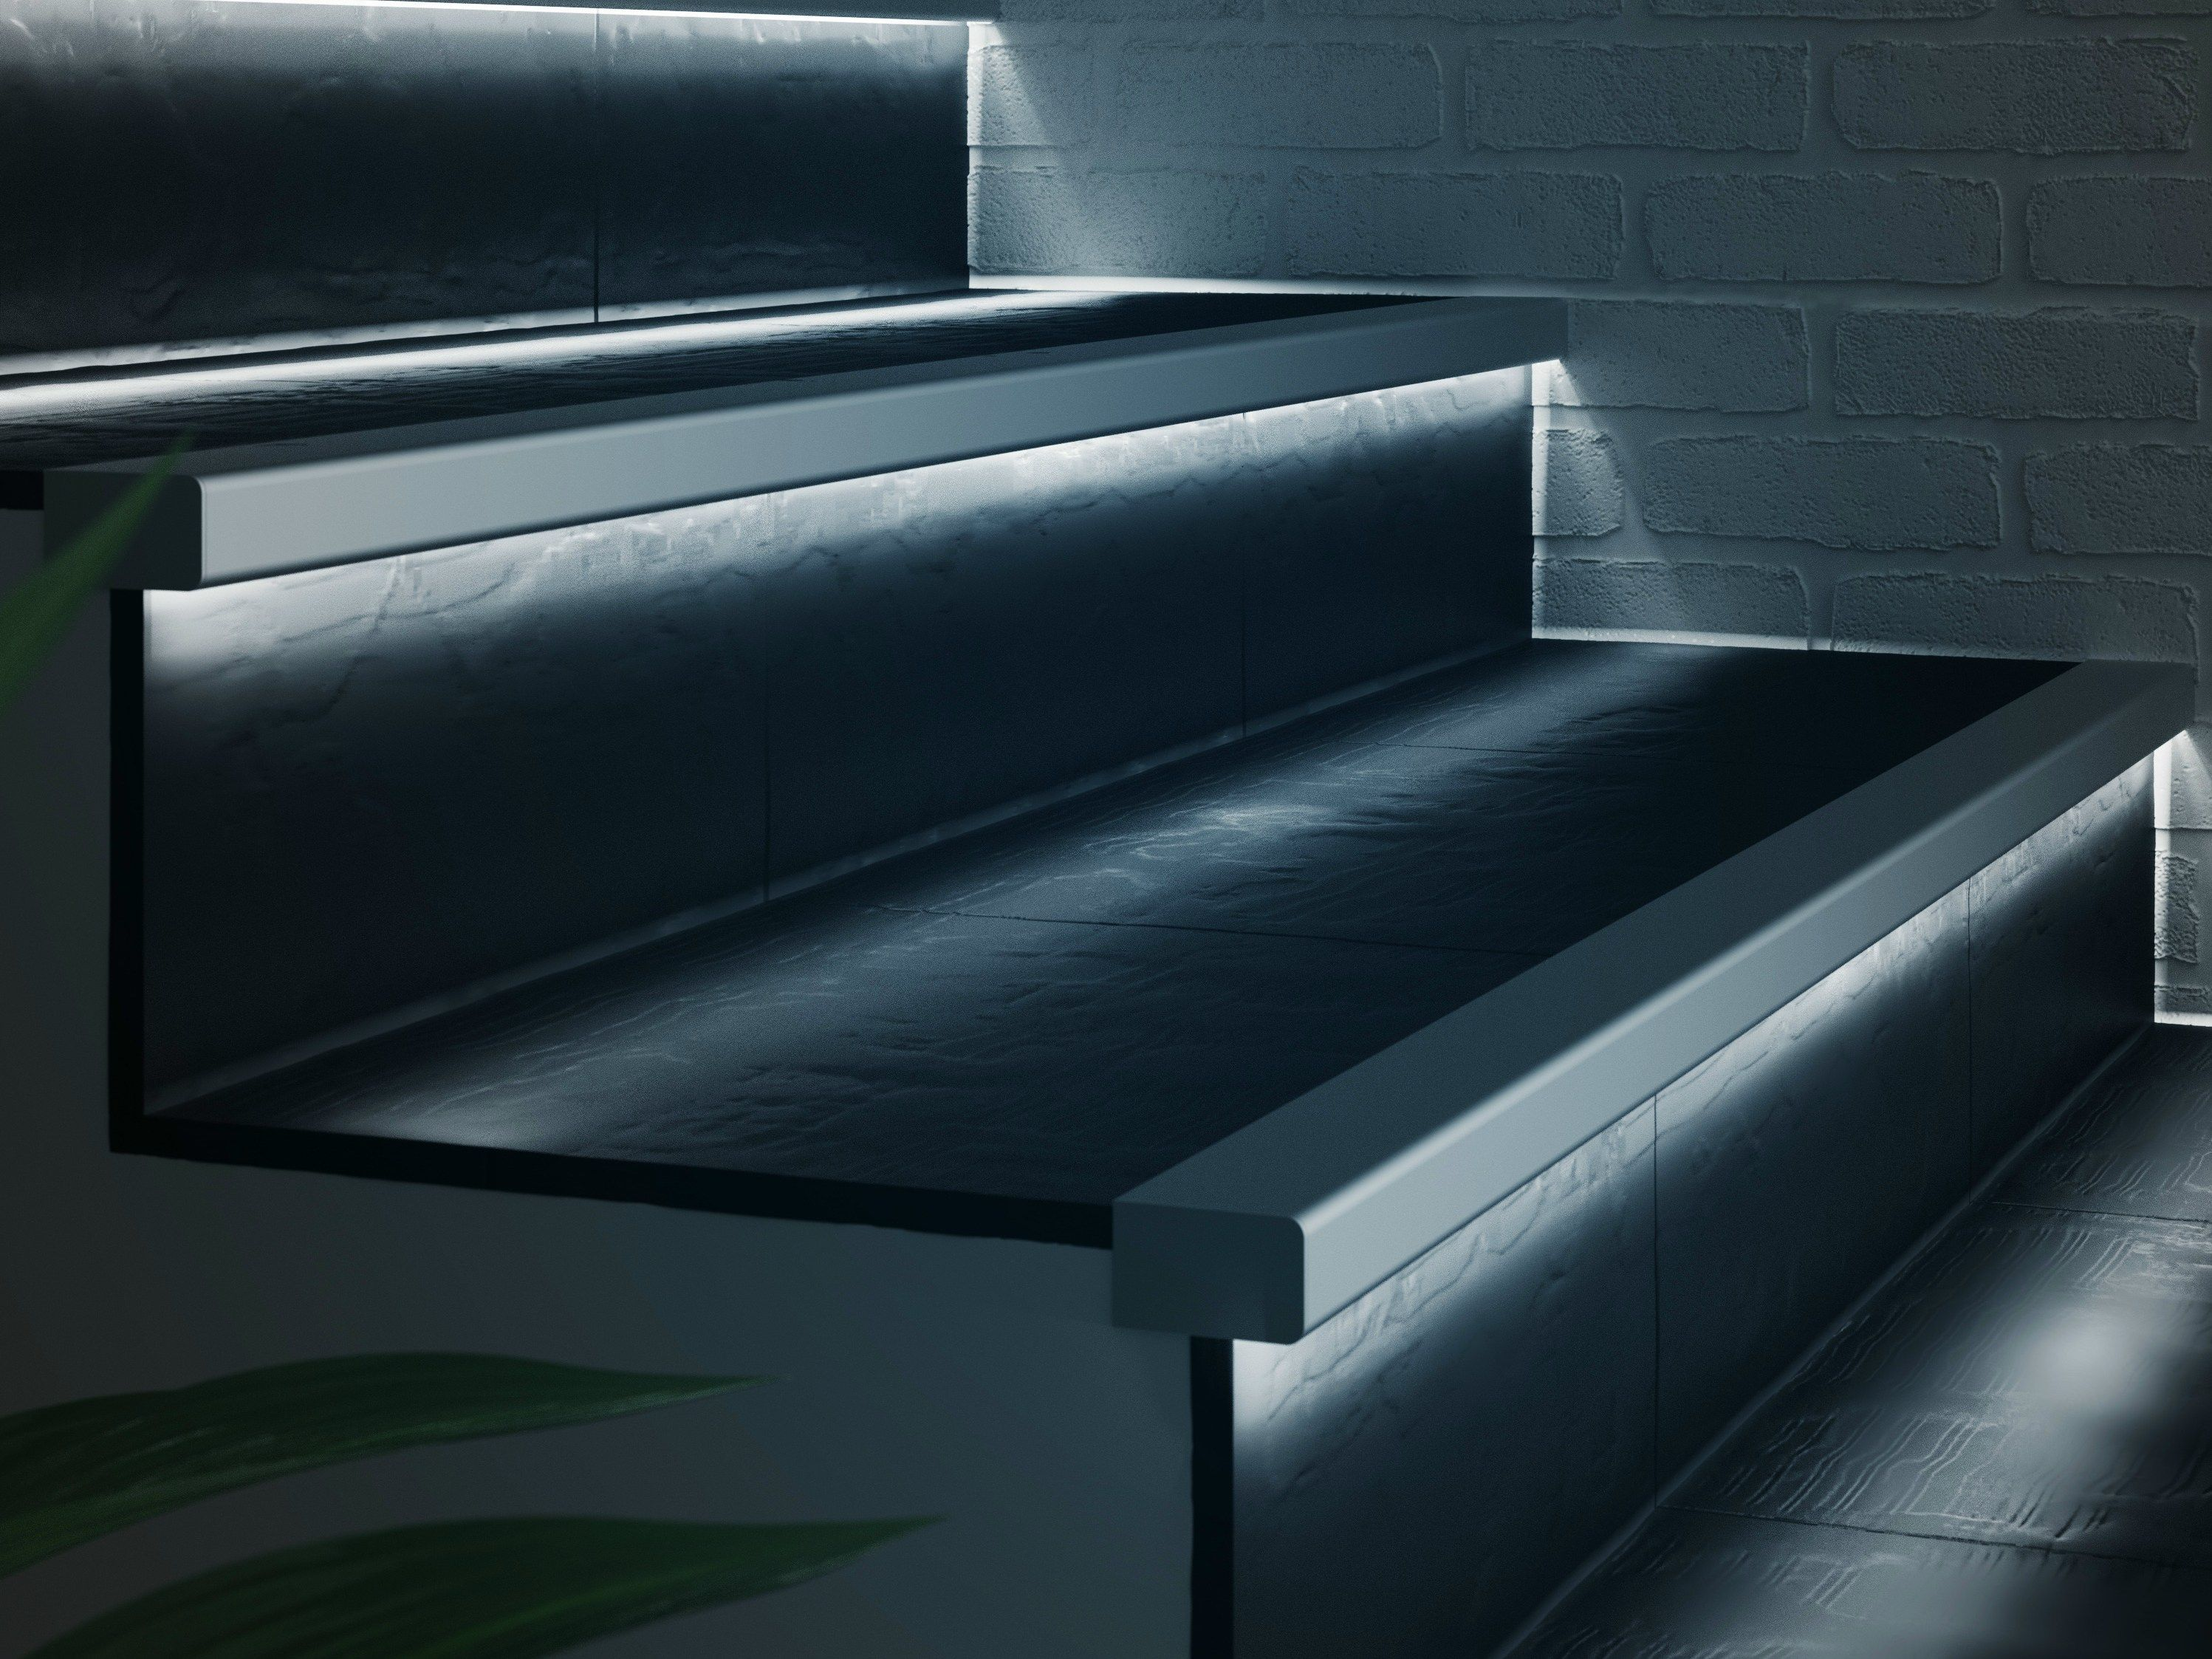 Perfiles esquineros de aluminio con led prolight prostep g 8 led colecci n prolight by profilpas - Escaleras con led ...